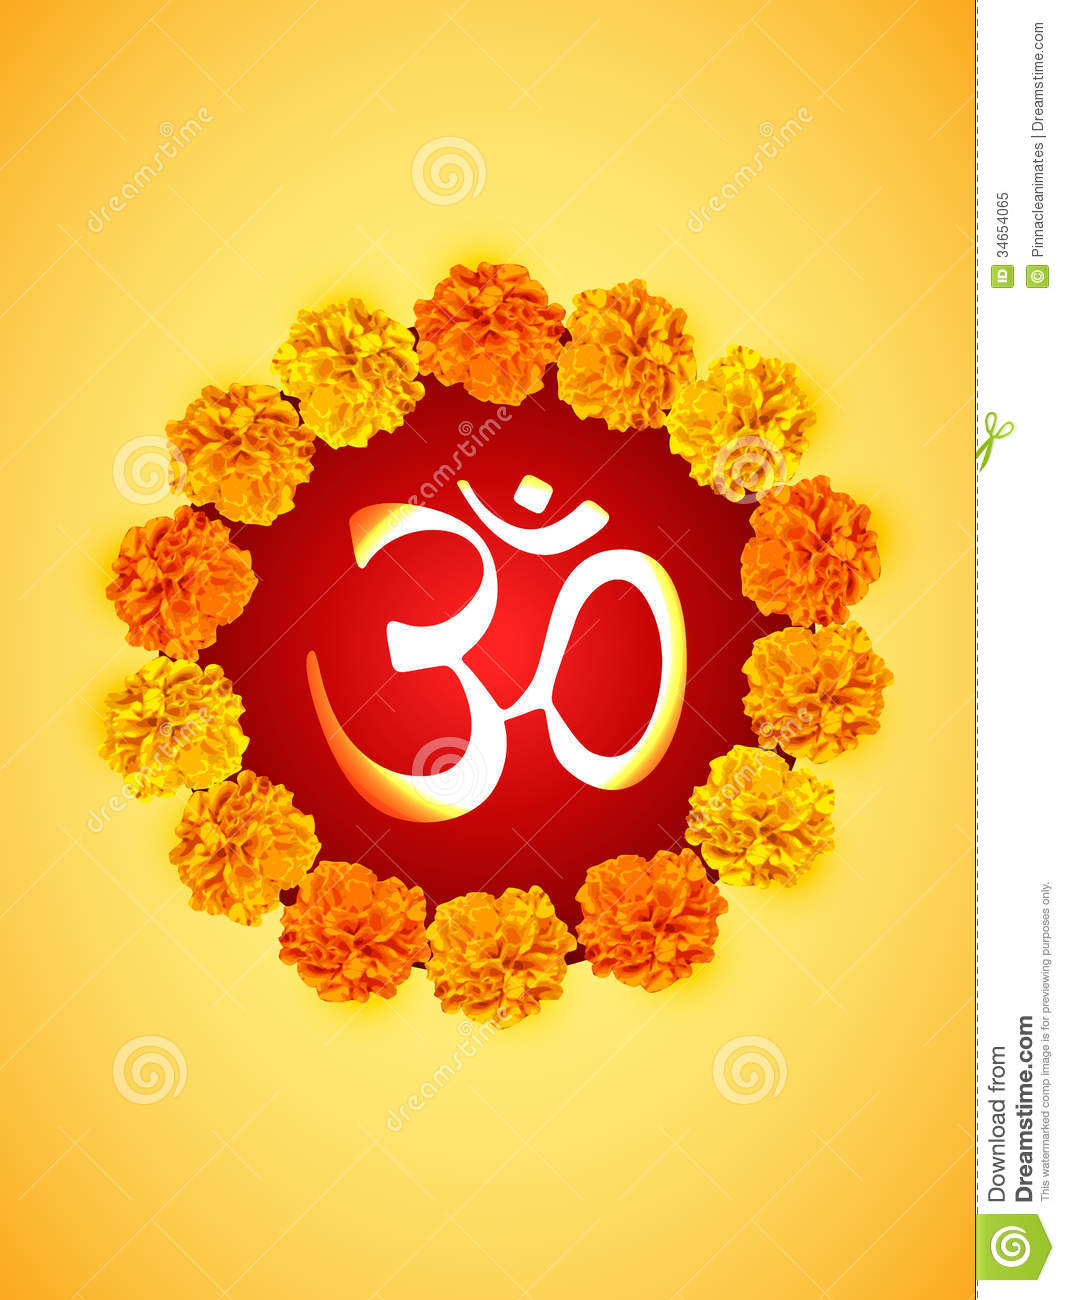 Om symbol royalty free stock photo image 34654065 Om pic download